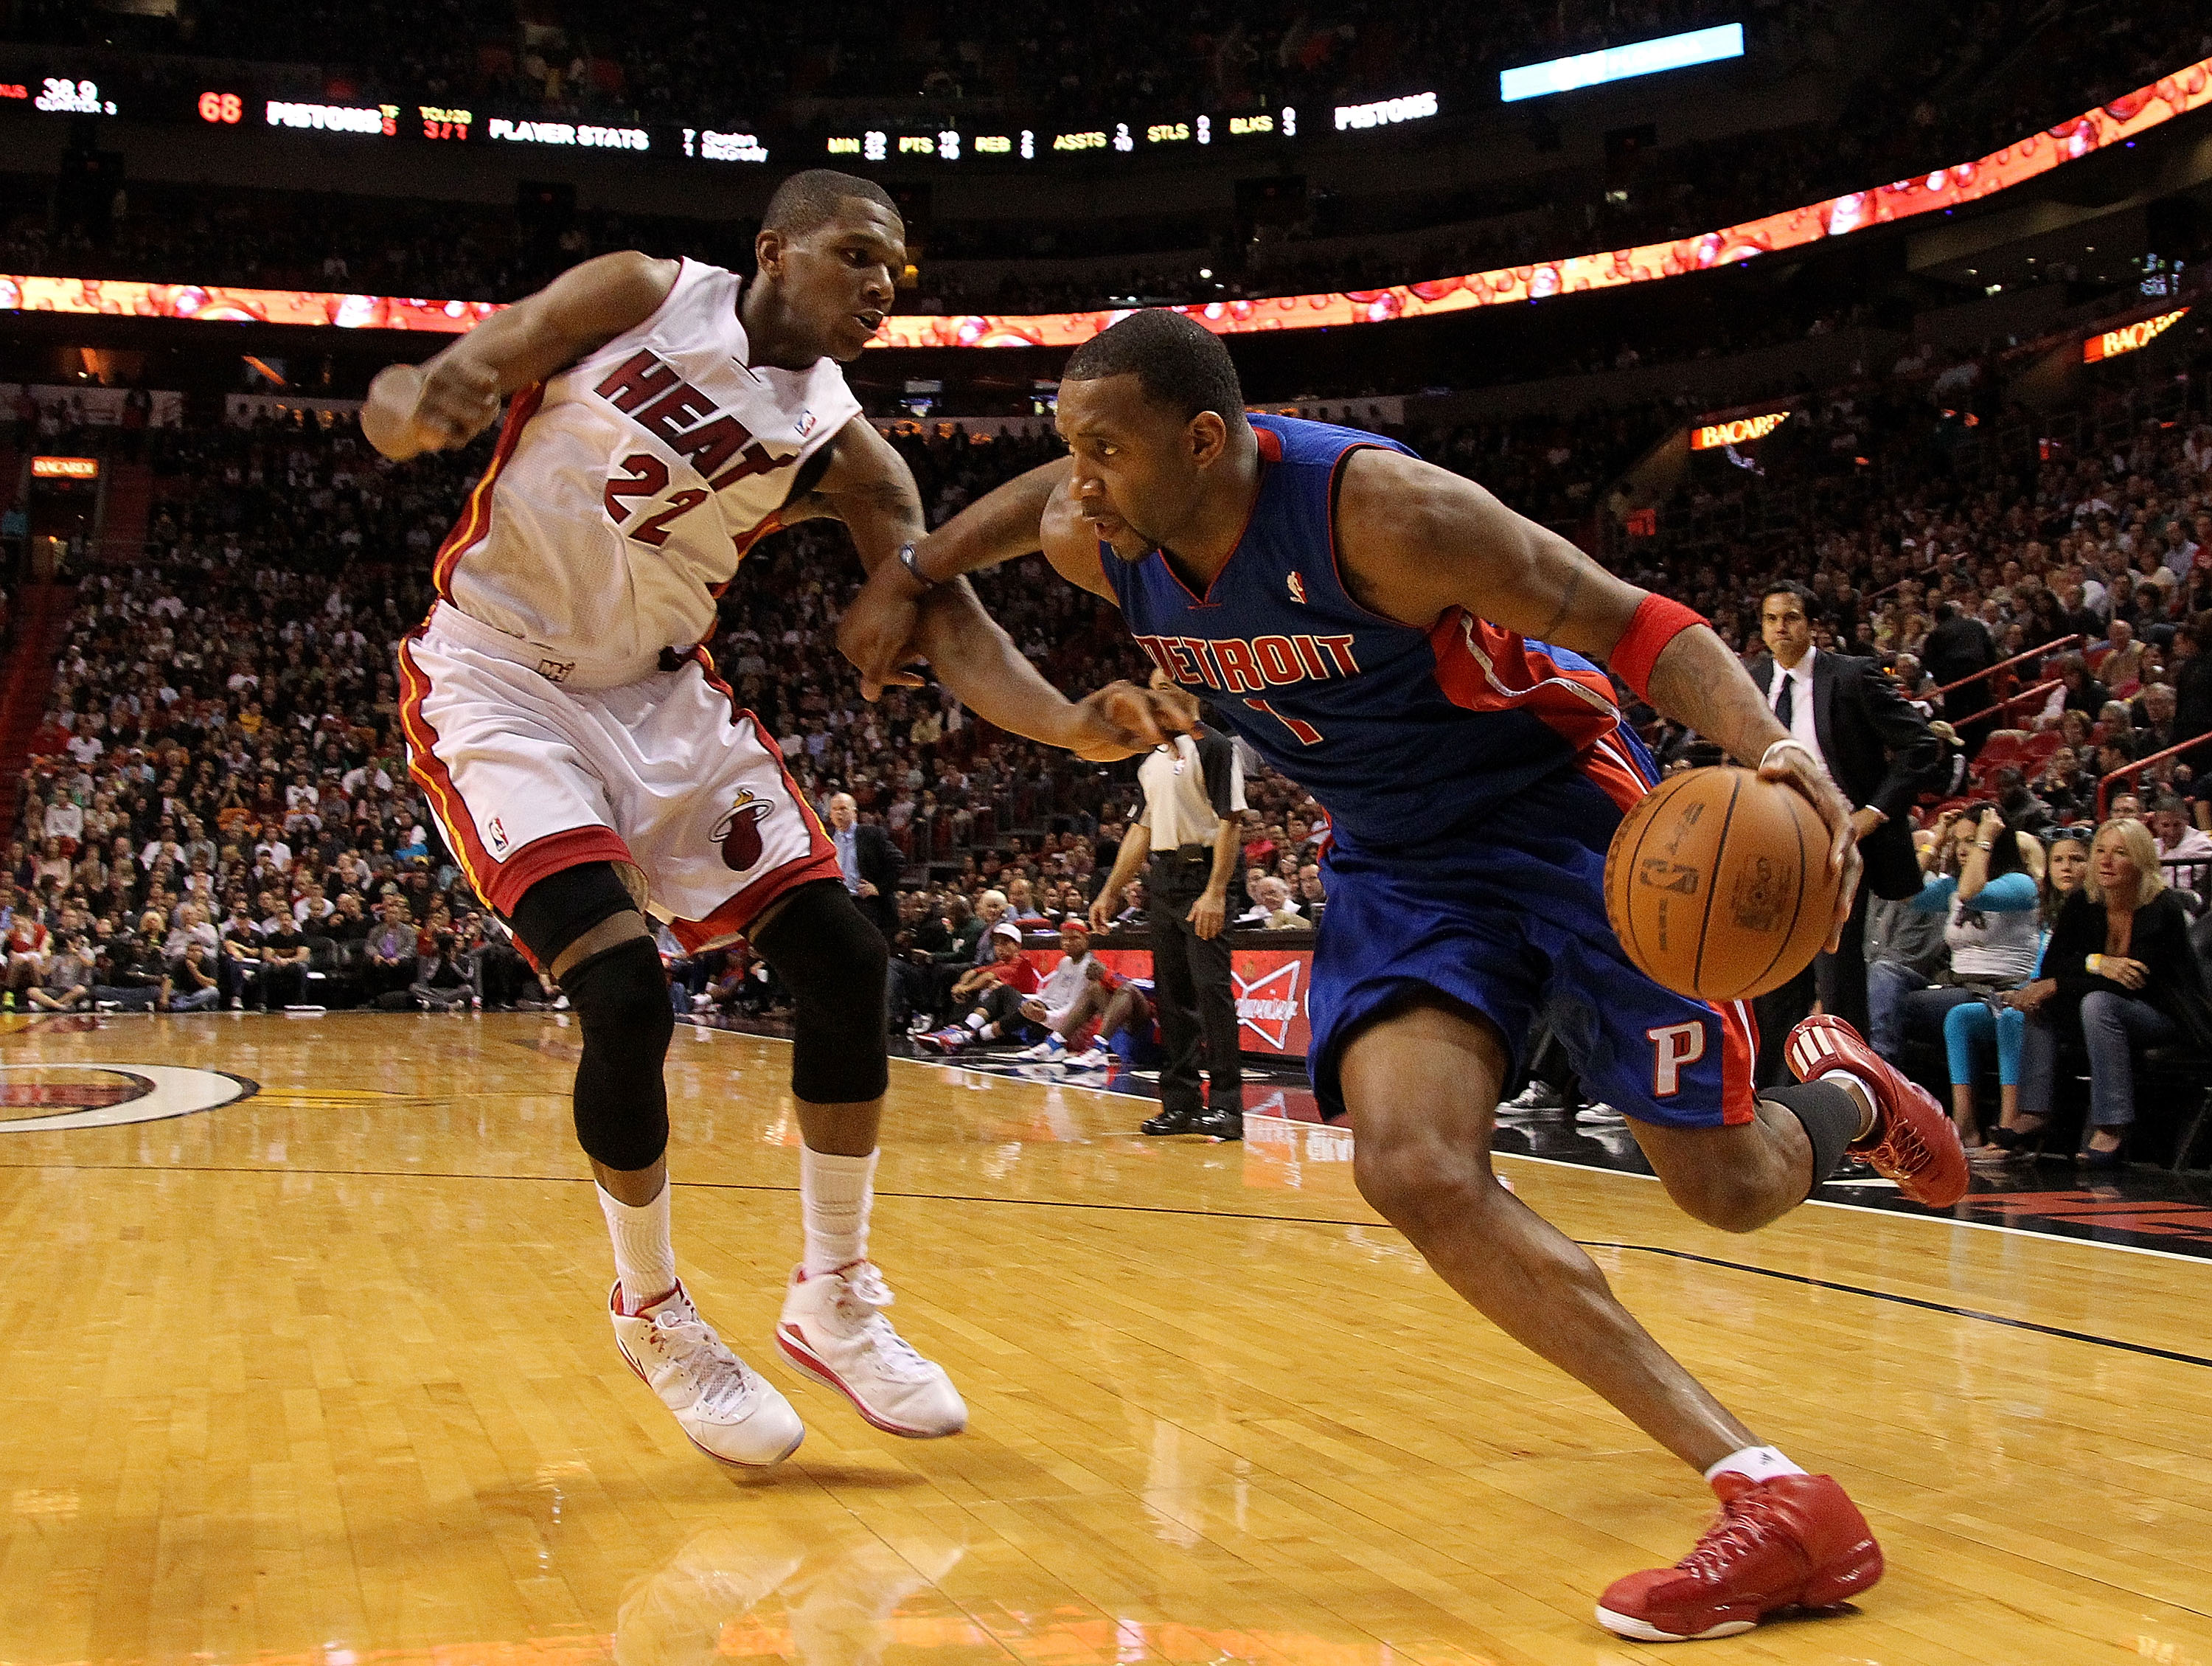 MIAMI, FL - JANUARY 28:  Tracy McGrady #1 of of the Detroit Pistons drives against James Jones #22 of the Miami Heat during a game at American Airlines Arena on January 28, 2011 in Miami, Florida. NOTE TO USER: User expressly acknowledges and agrees that,